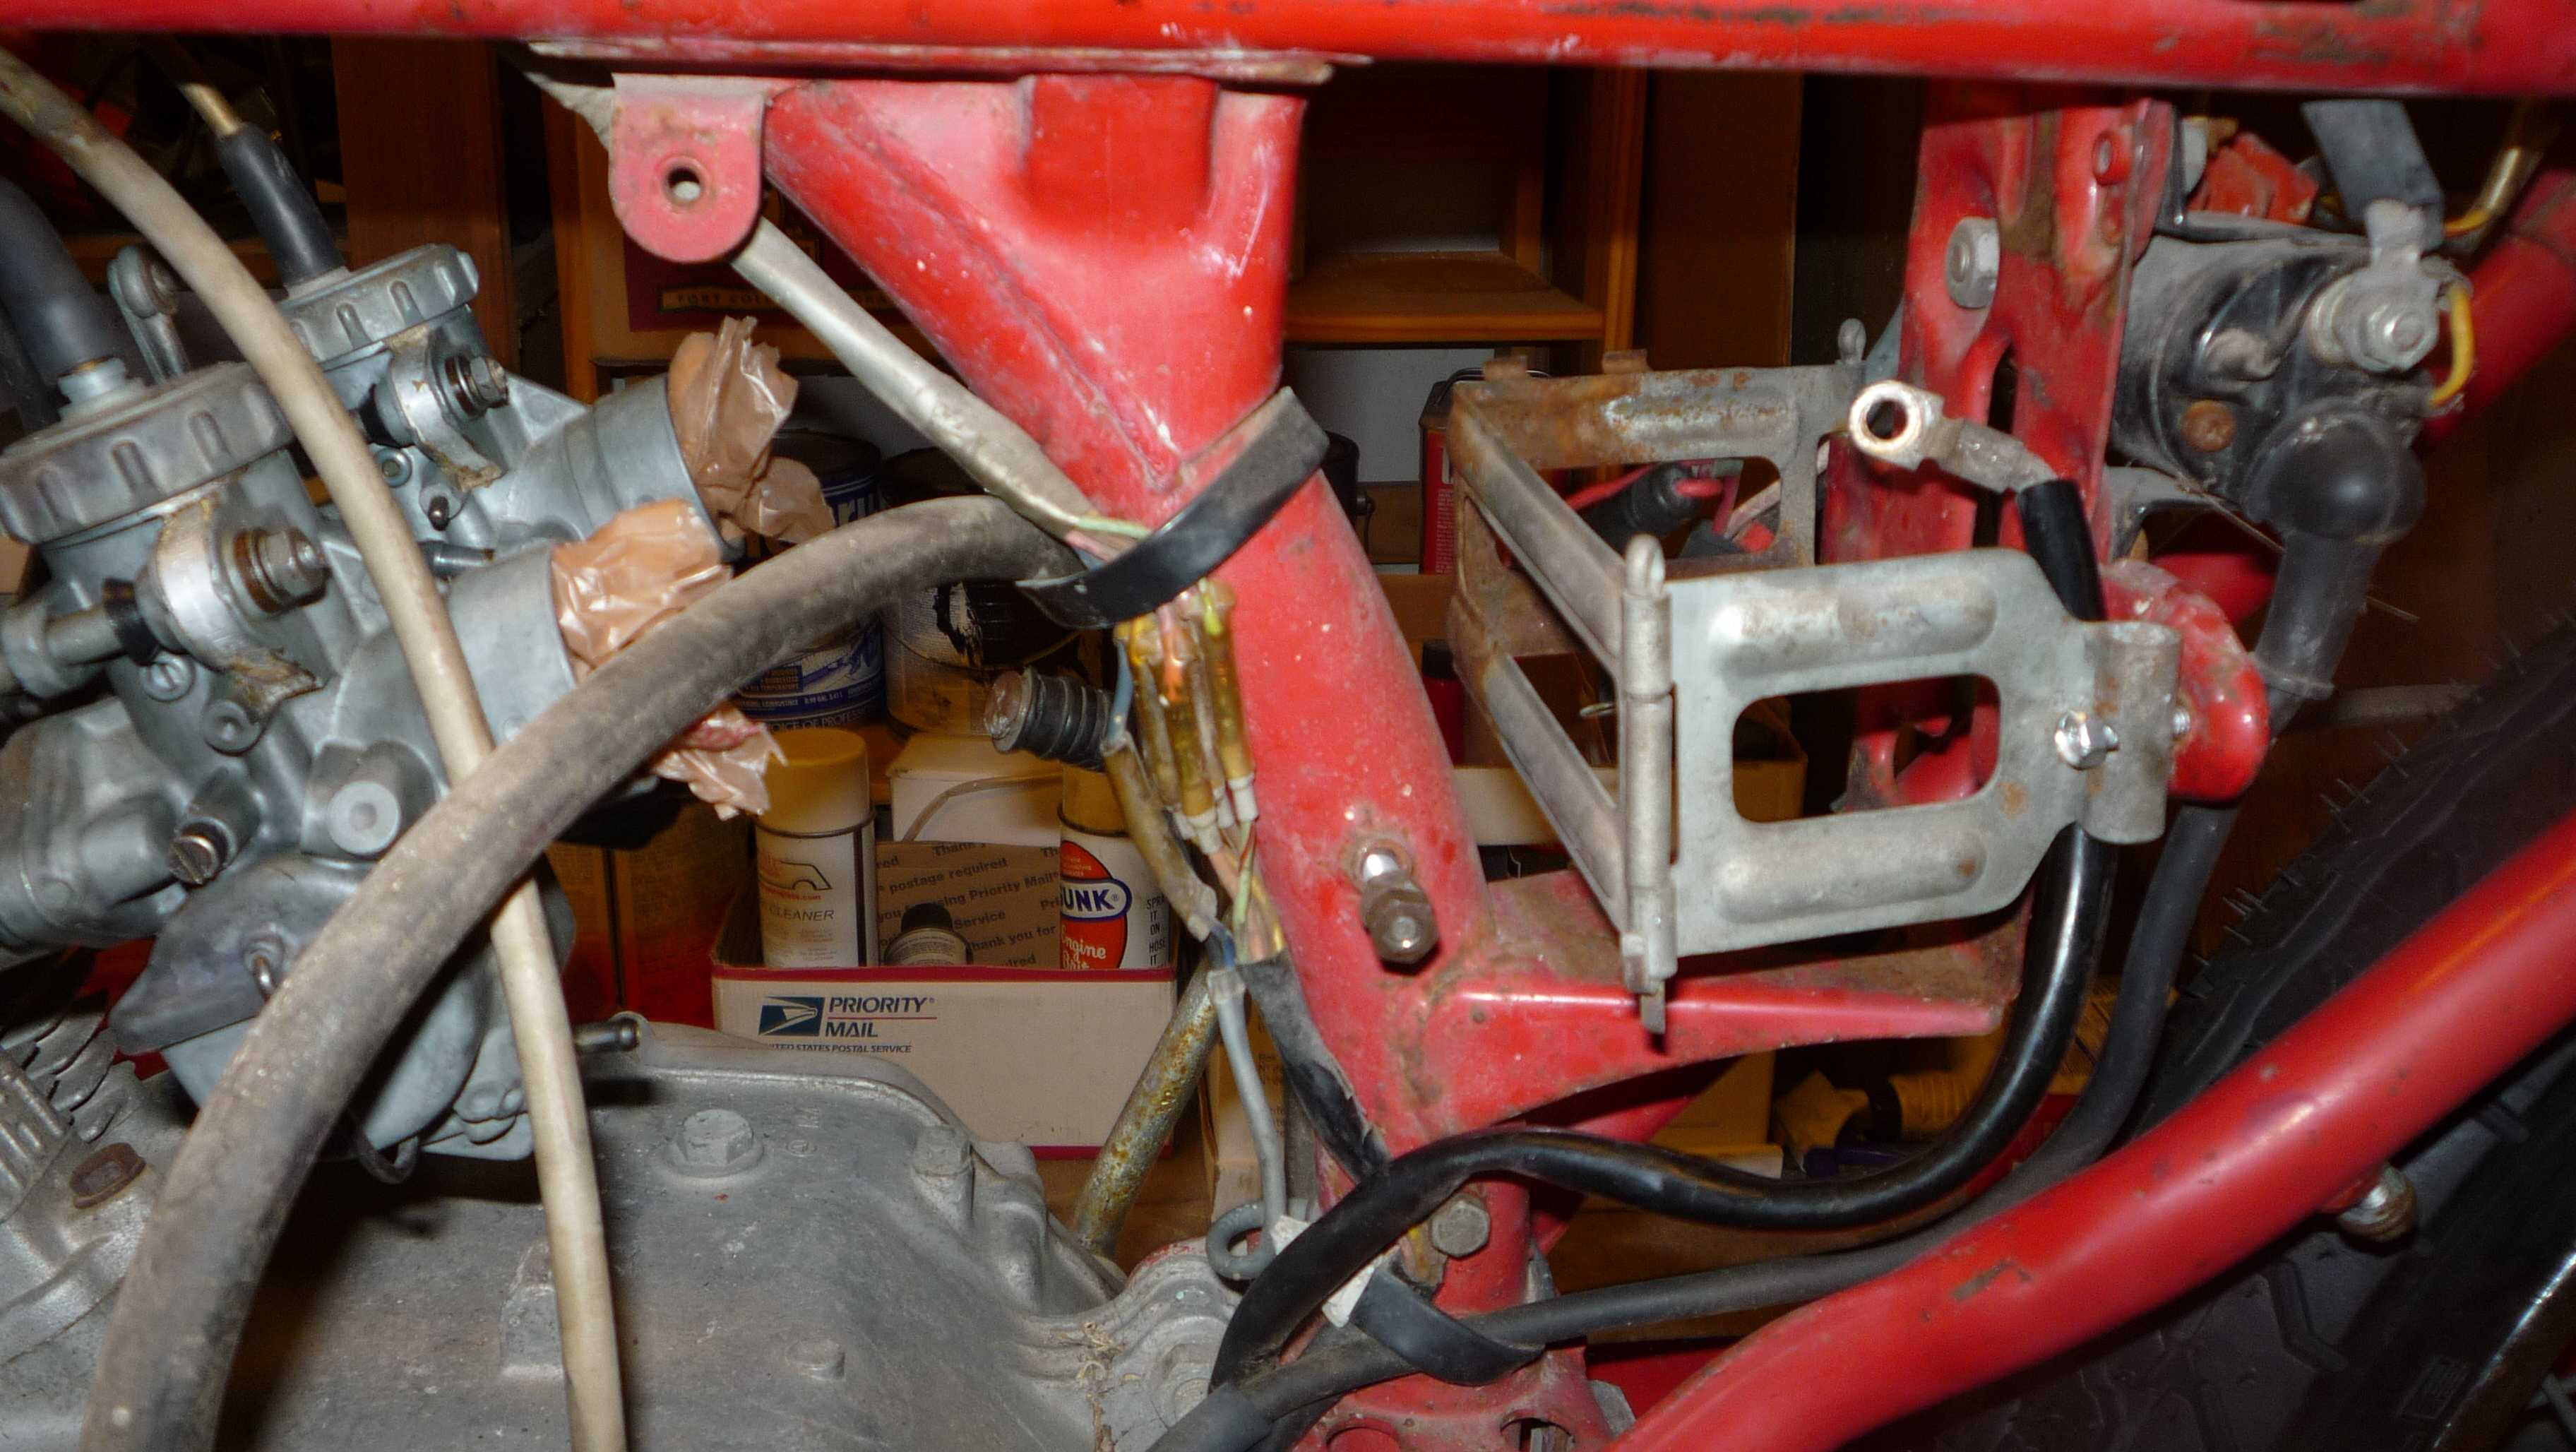 ... Building CB160's from bare frames need pics of harness  routi-p1000465.jpg